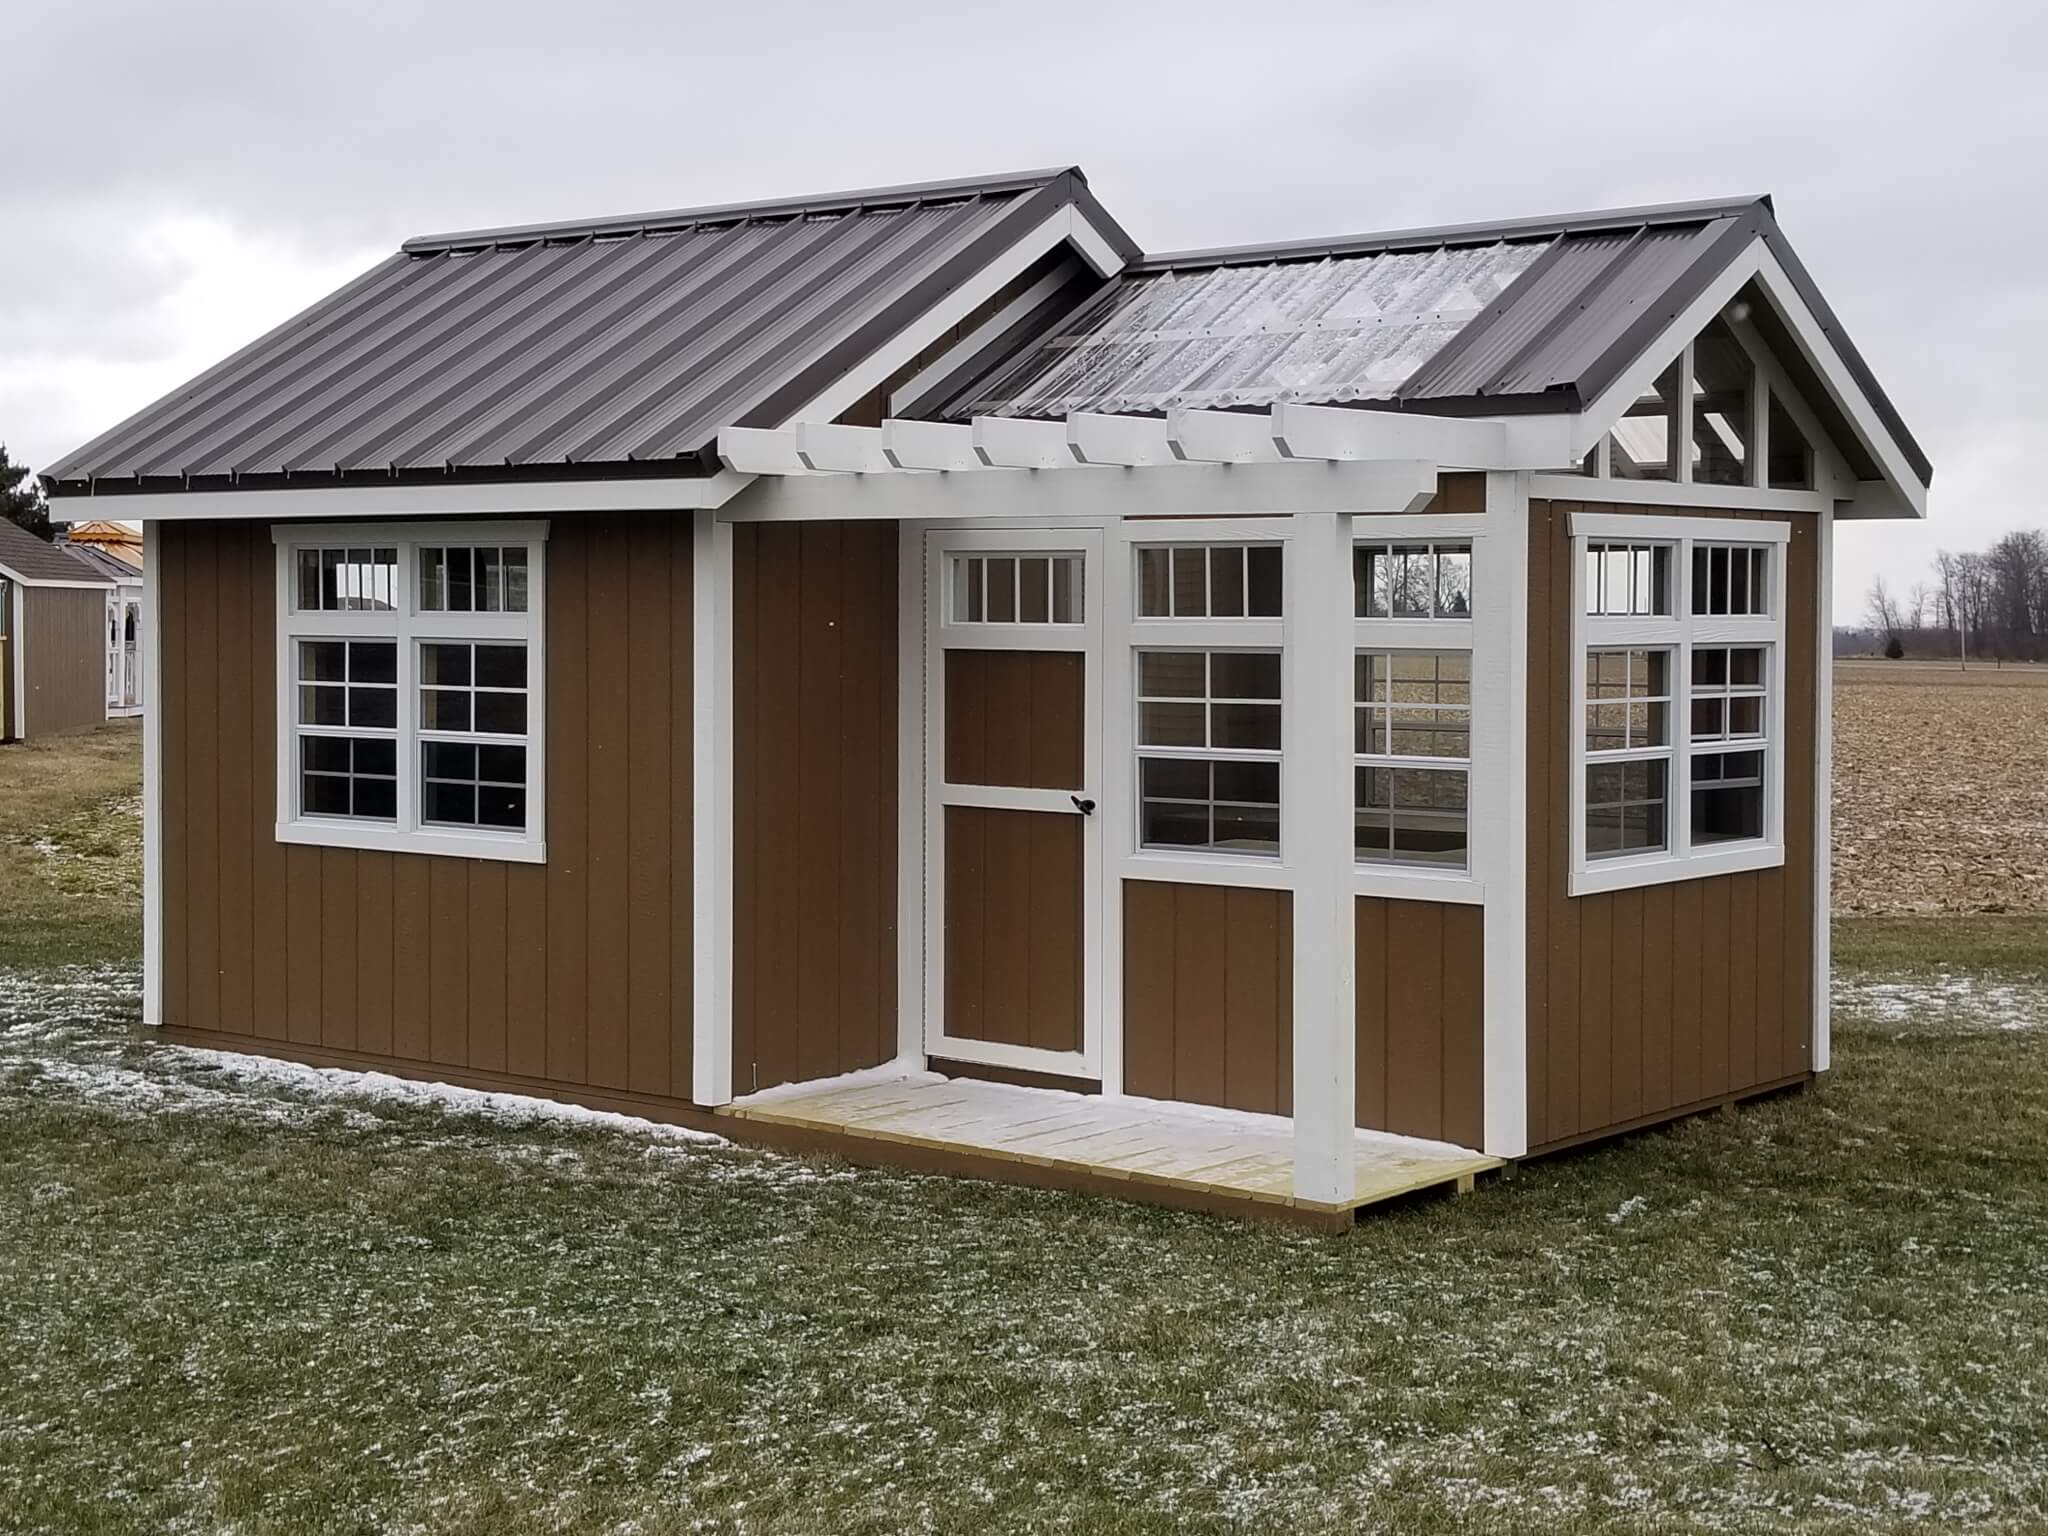 sheds images english potting teracottage fancy more that shed